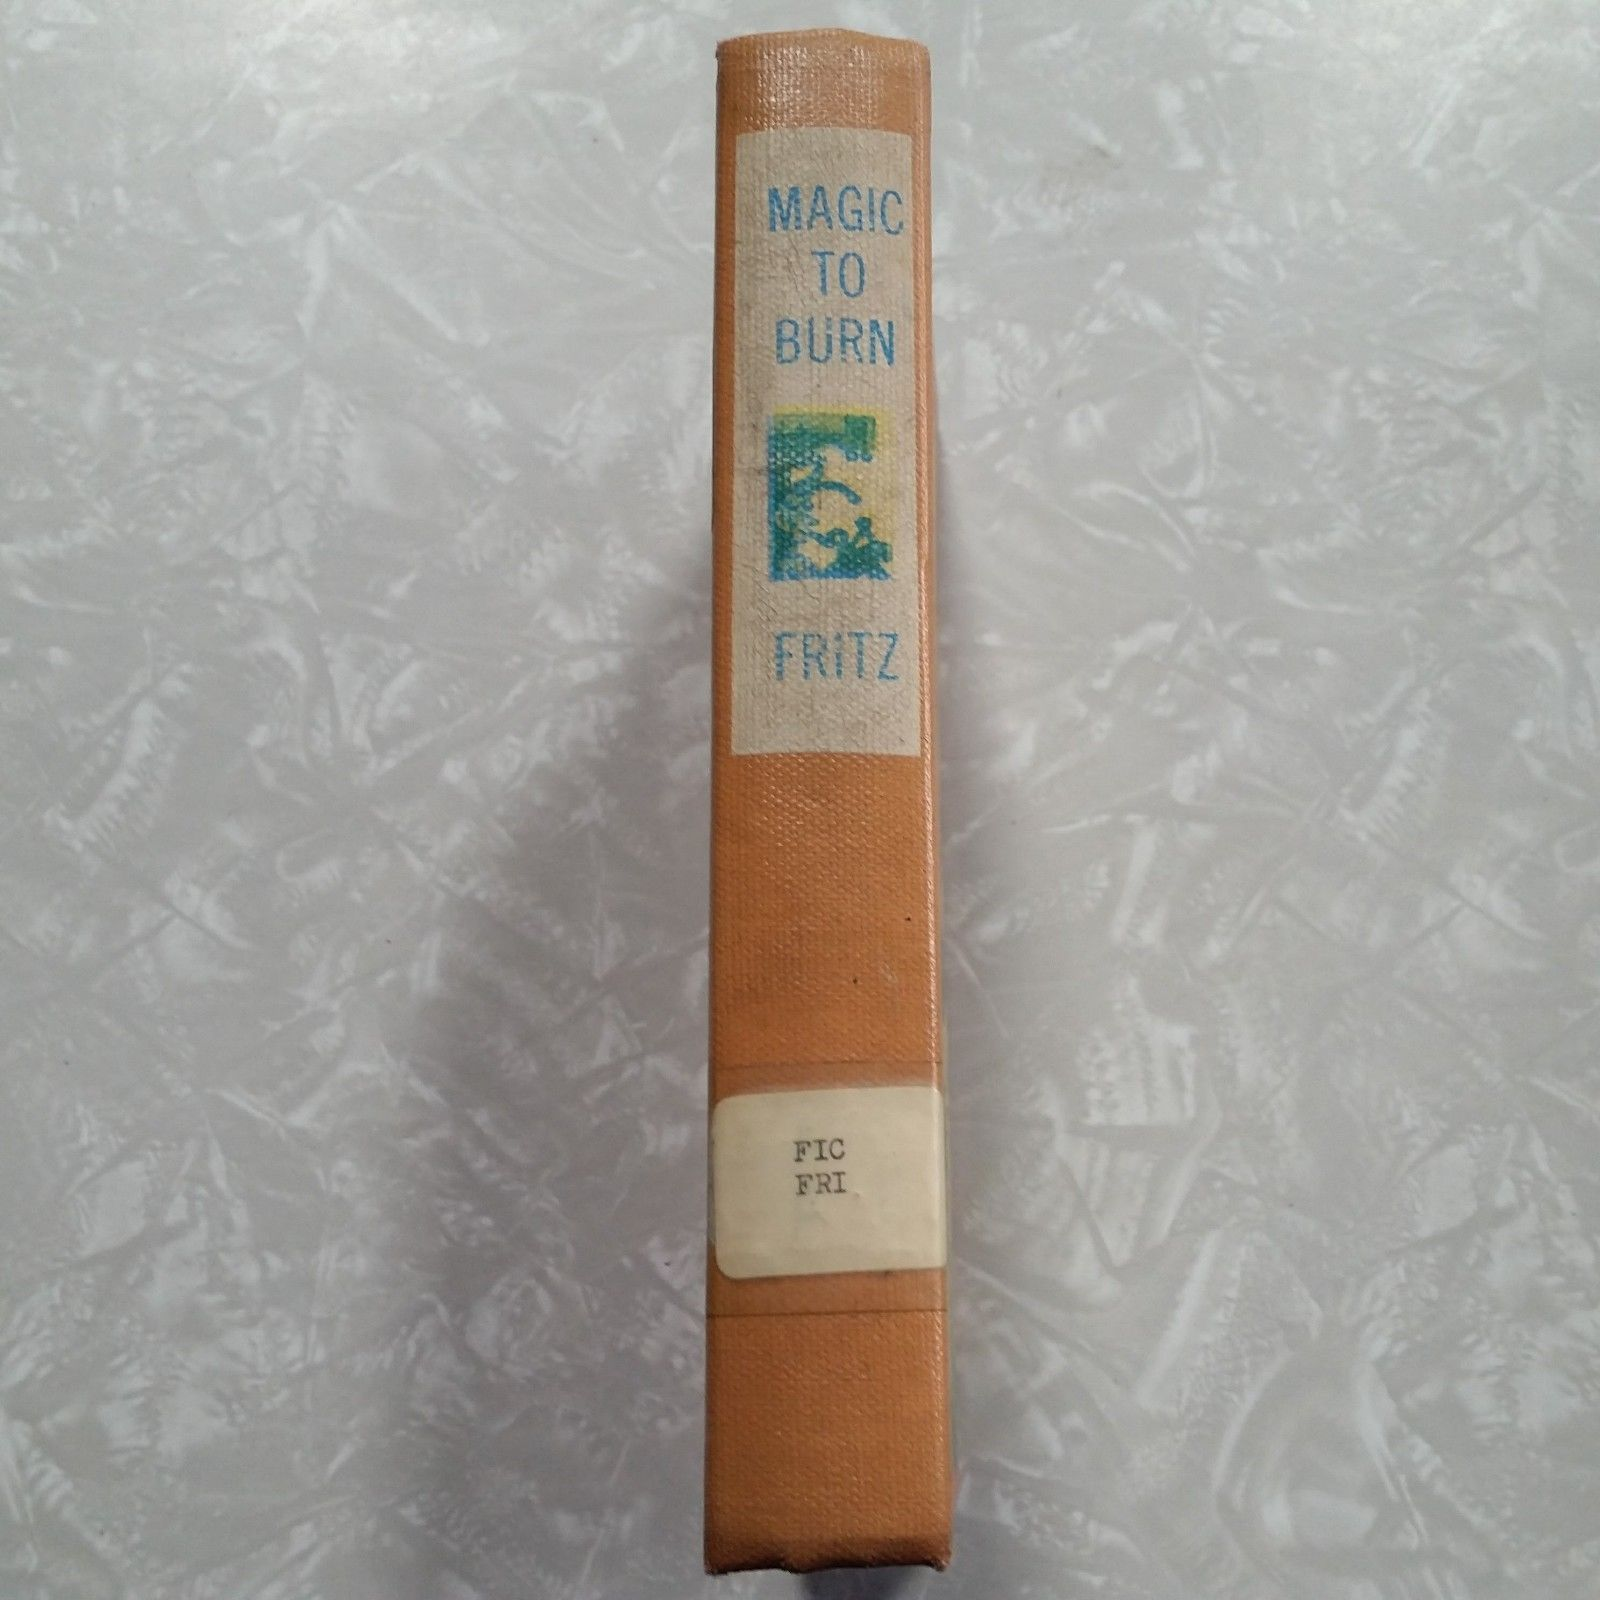 Magic To Burn by Jean Fritz 1964 Hardcover 2nd Impression or Printing Ex Library